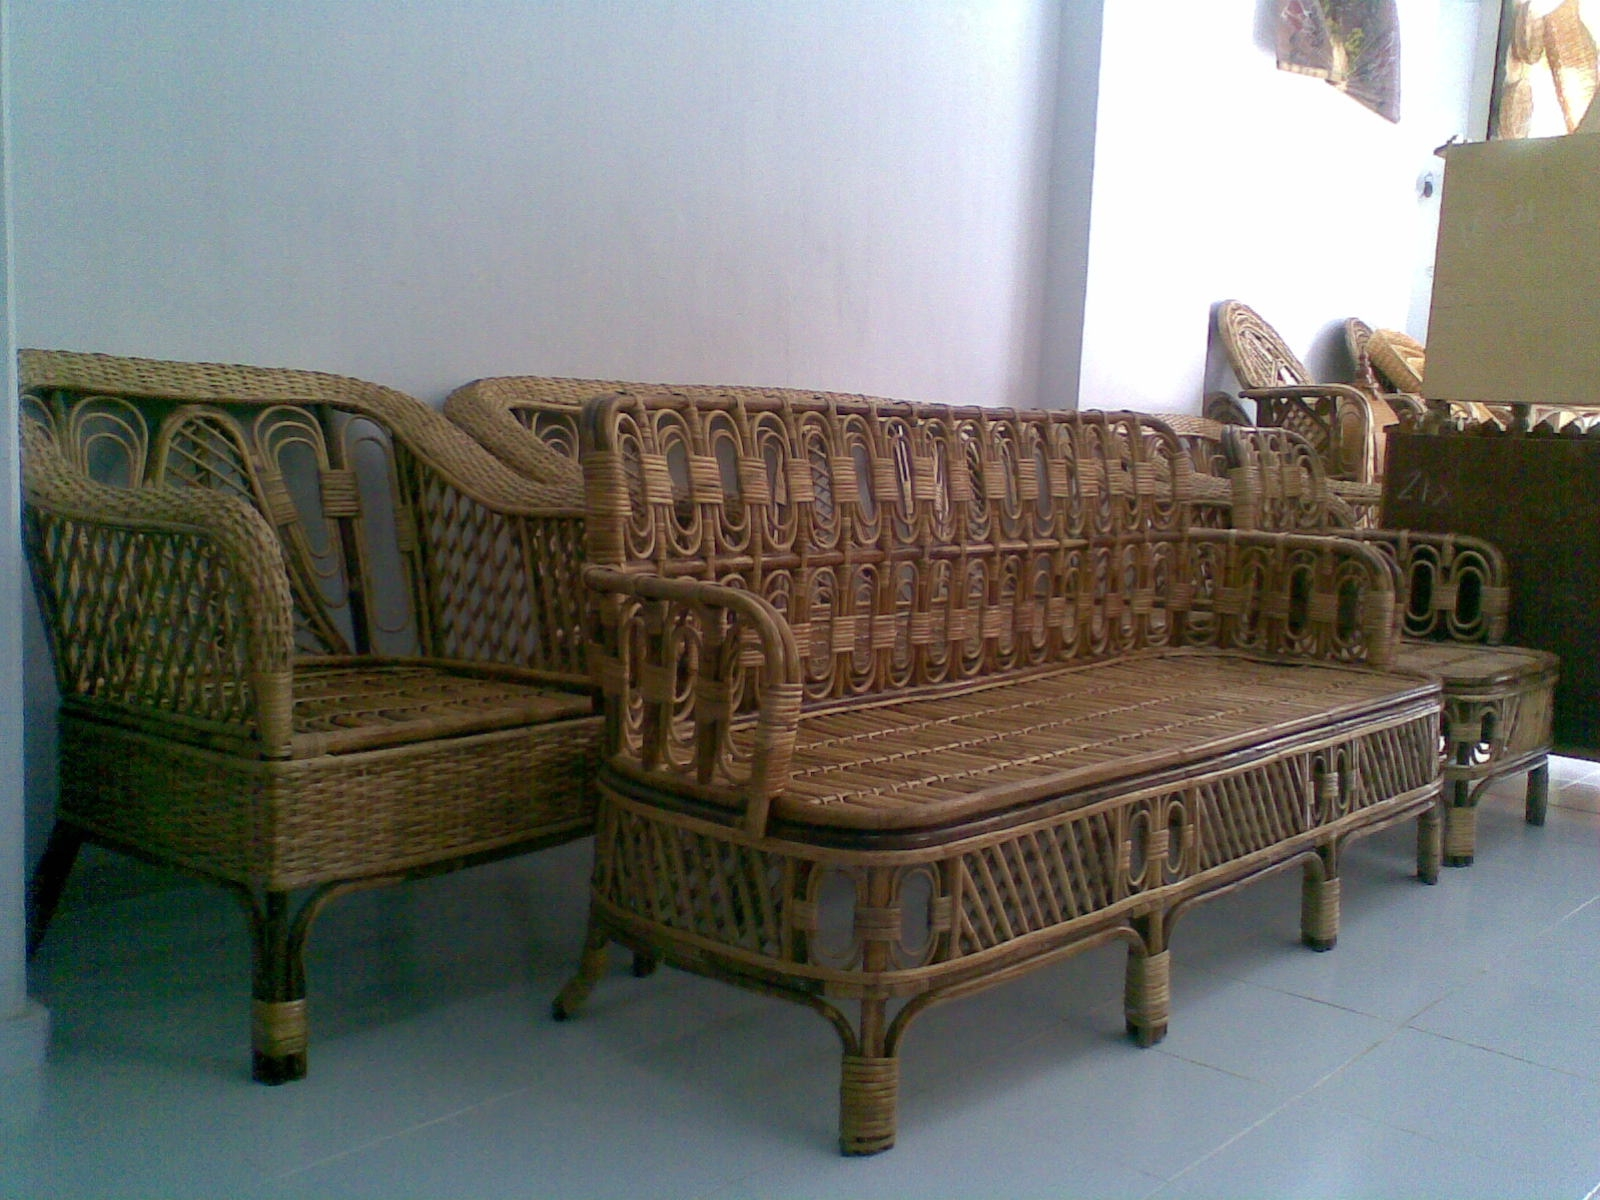 Sofa Set Furniture Diwan Cane Sofa Set Center Tipoy Cane Swings Dining Table Cane Chair